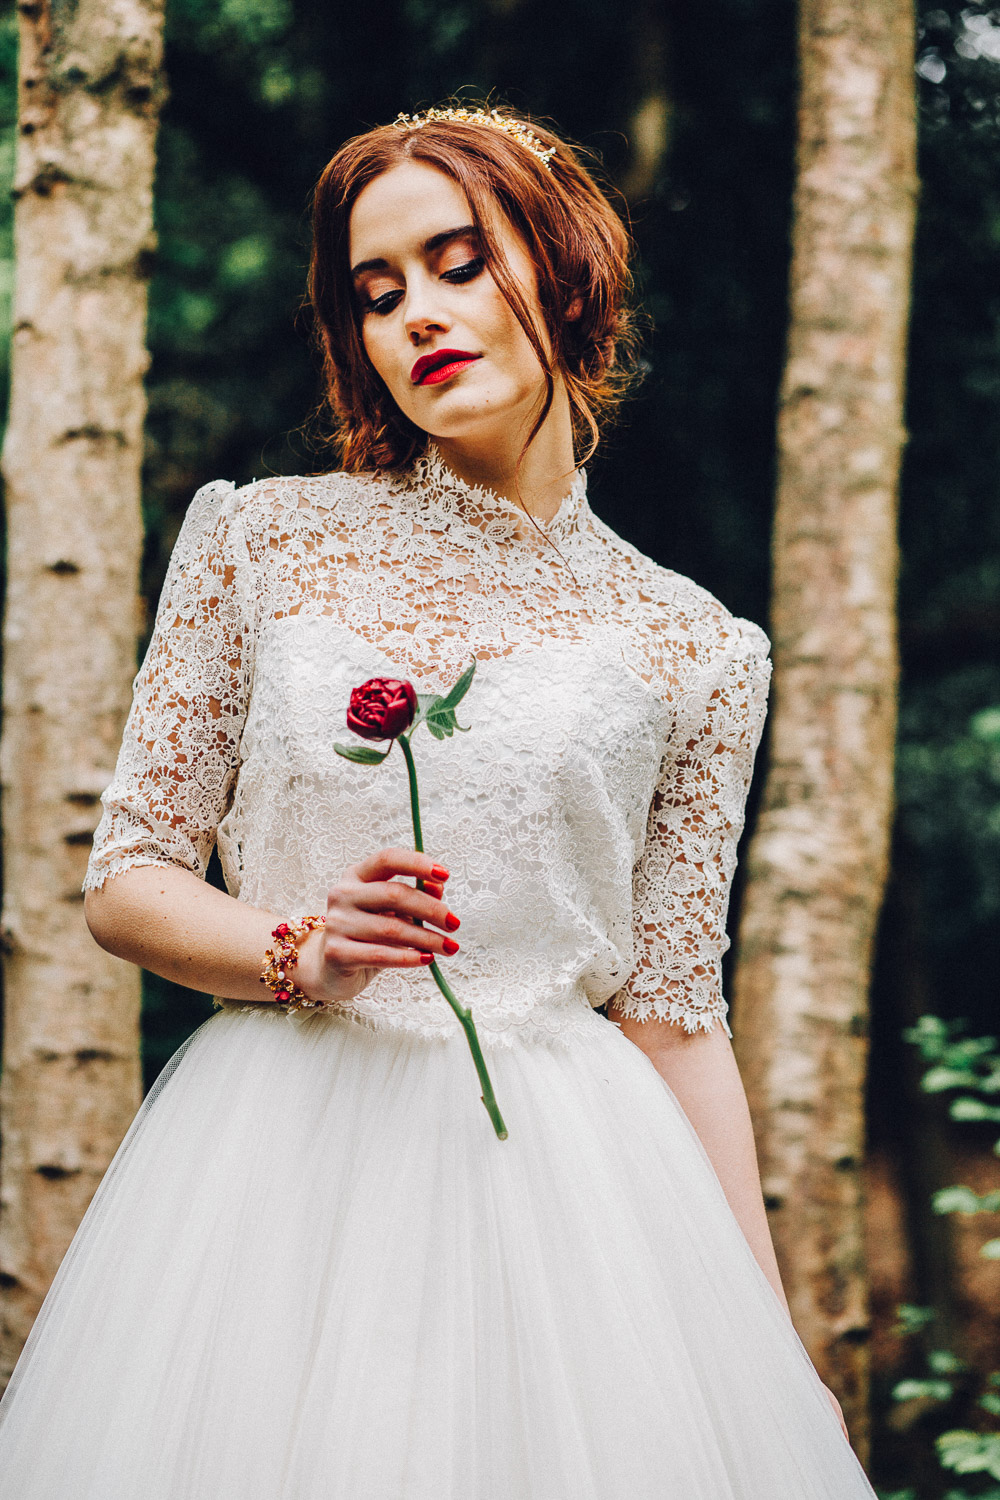 Disney Snow White Bridal Ideas  - Alternative Essex Wedding Photographer